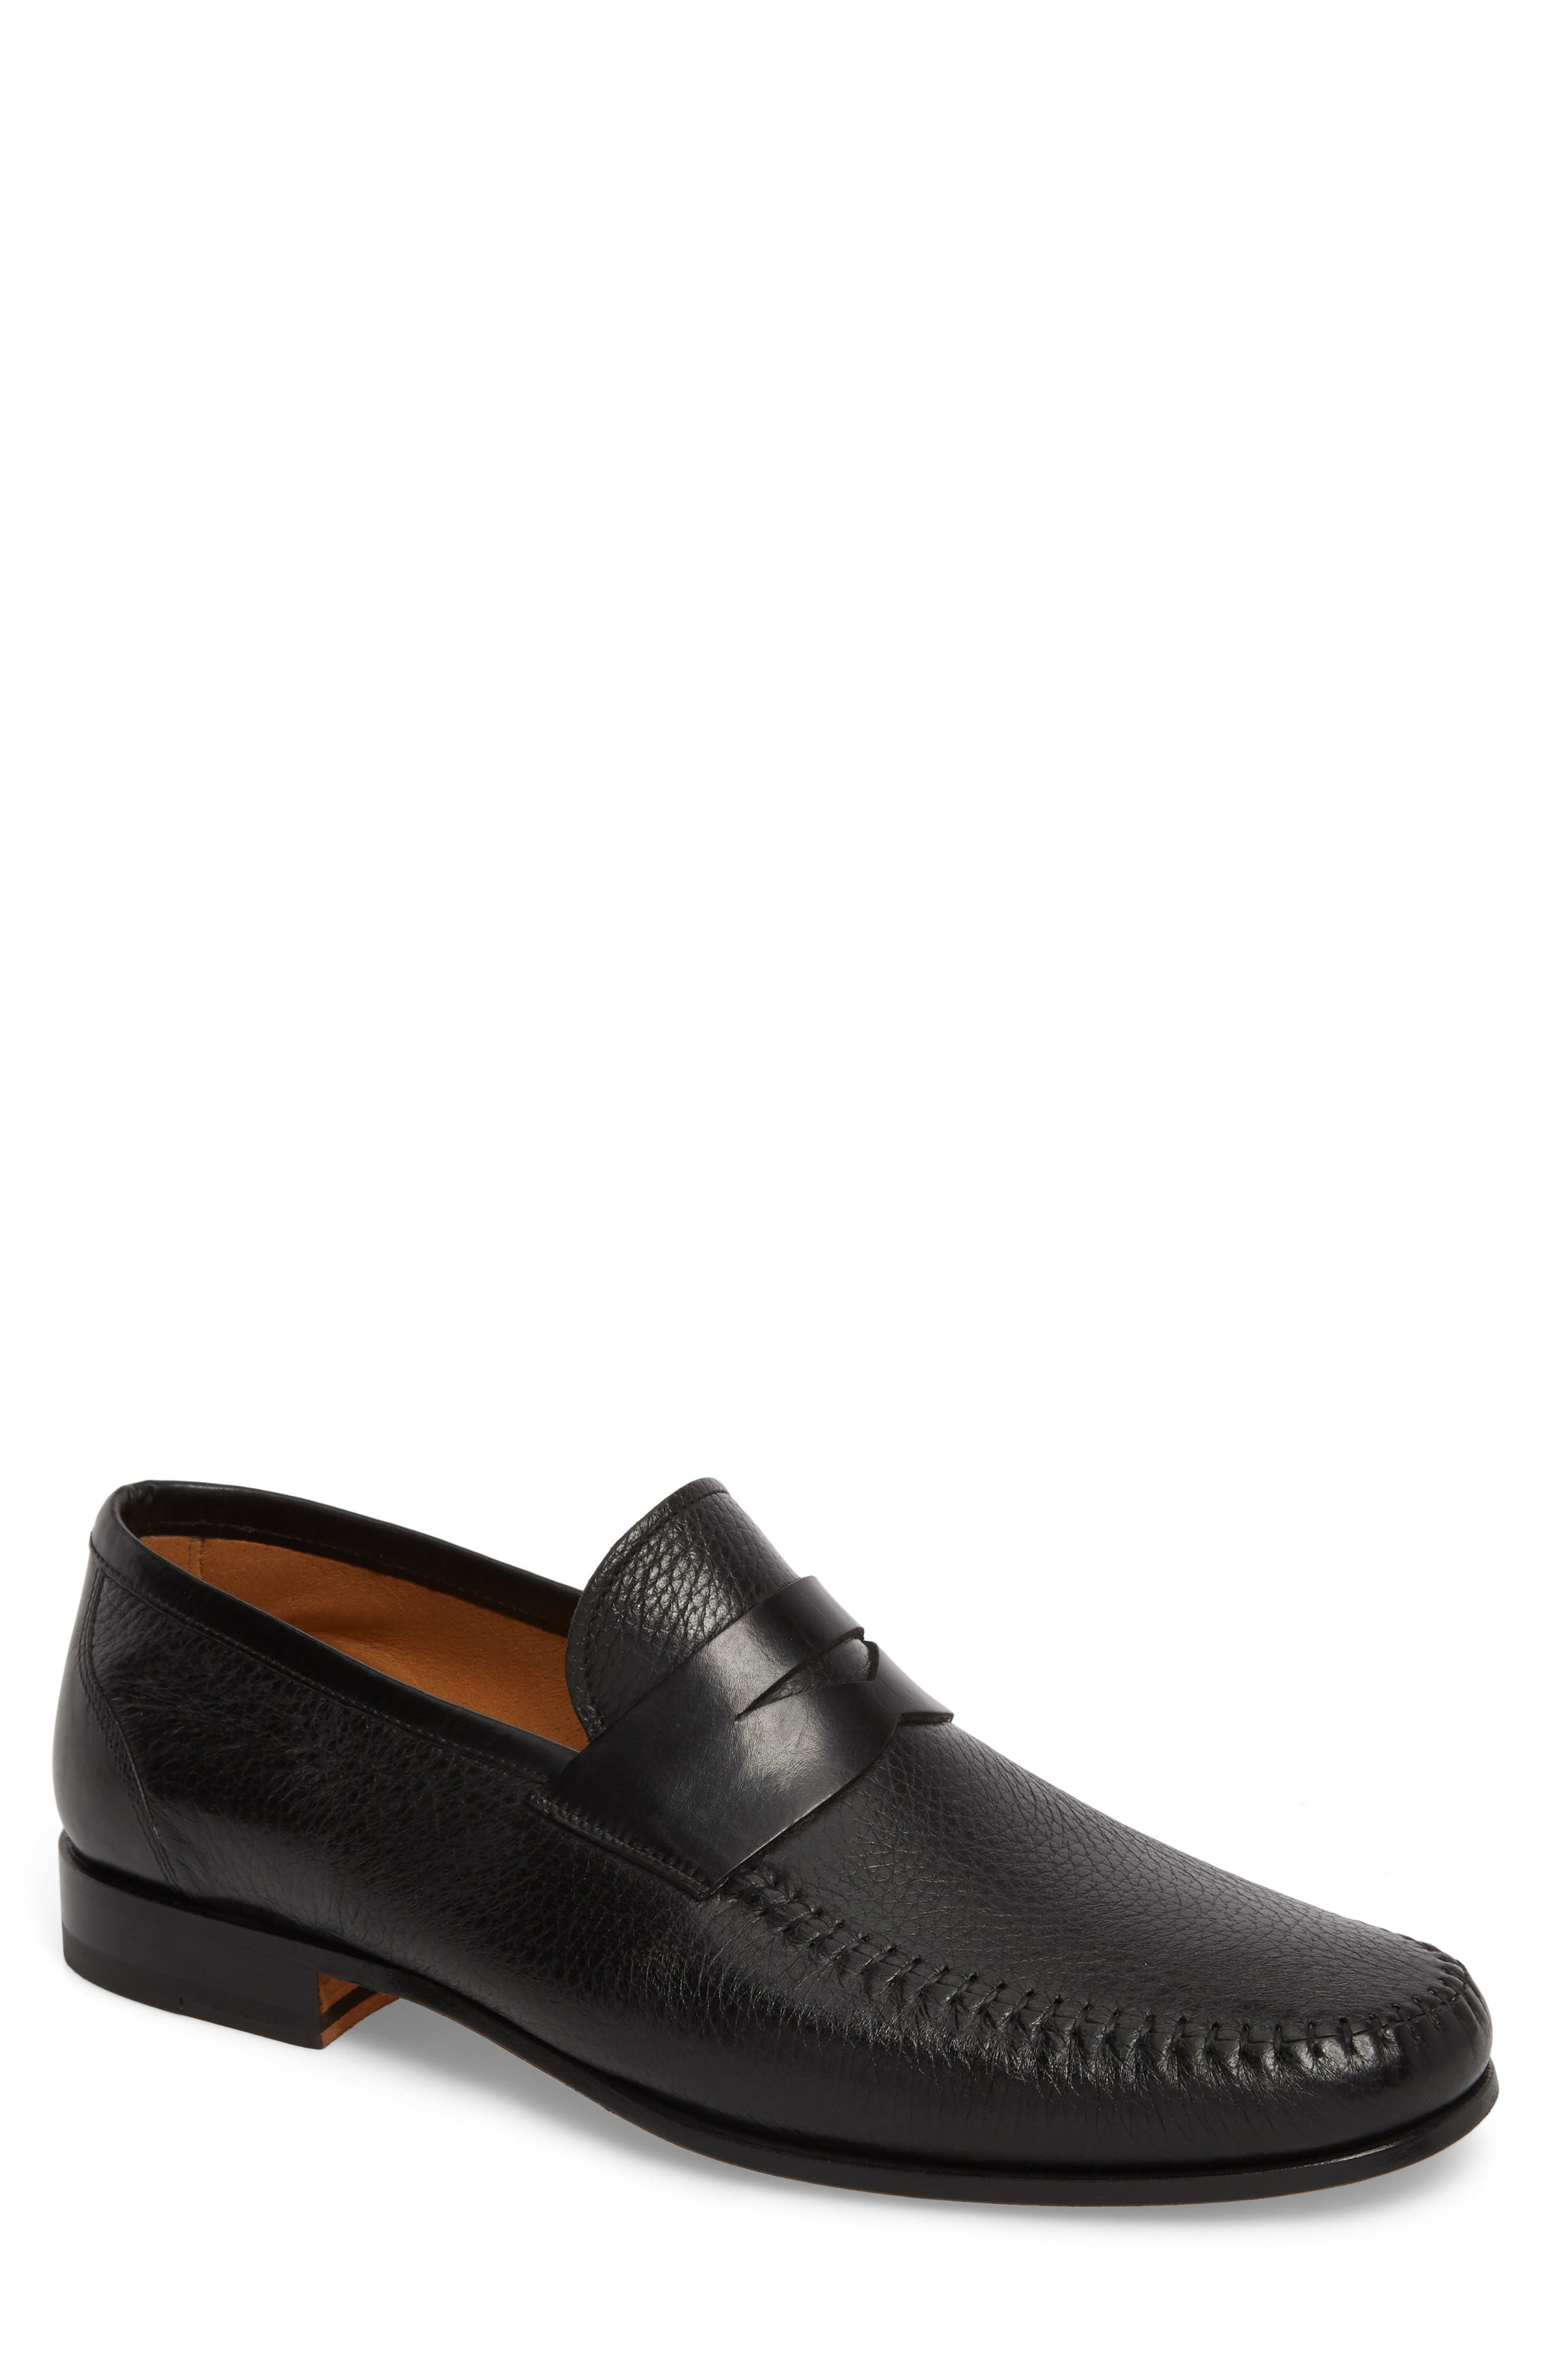 MAGNANNI,                             Ramos Moc Toe Penny Loafer,                             Main thumbnail 1, color,                             BLACK/BLACK LEATHER